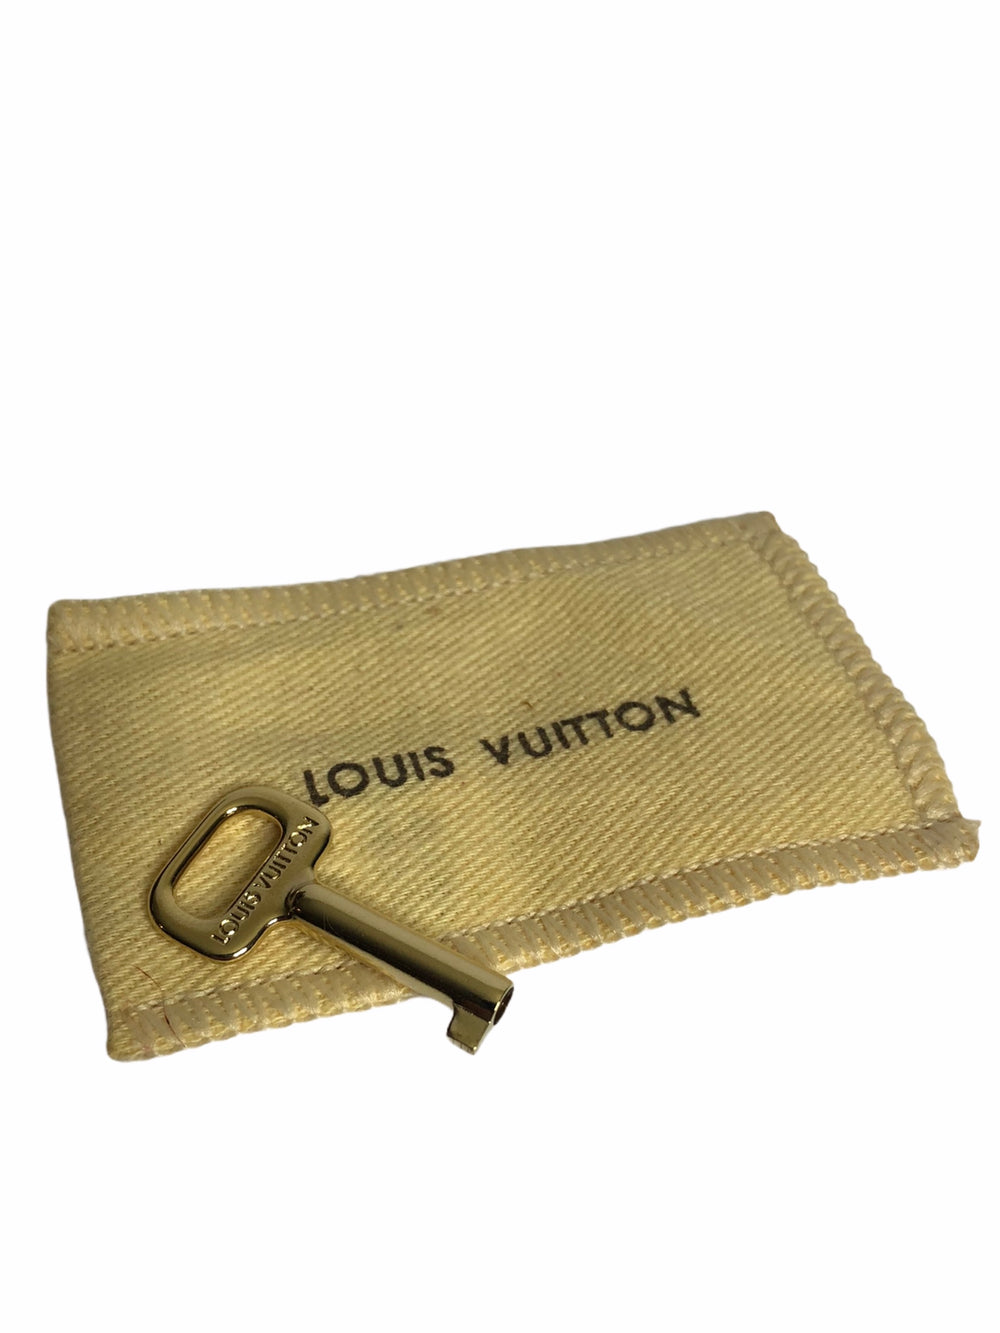 Louis Vuitton Monogram Canvas